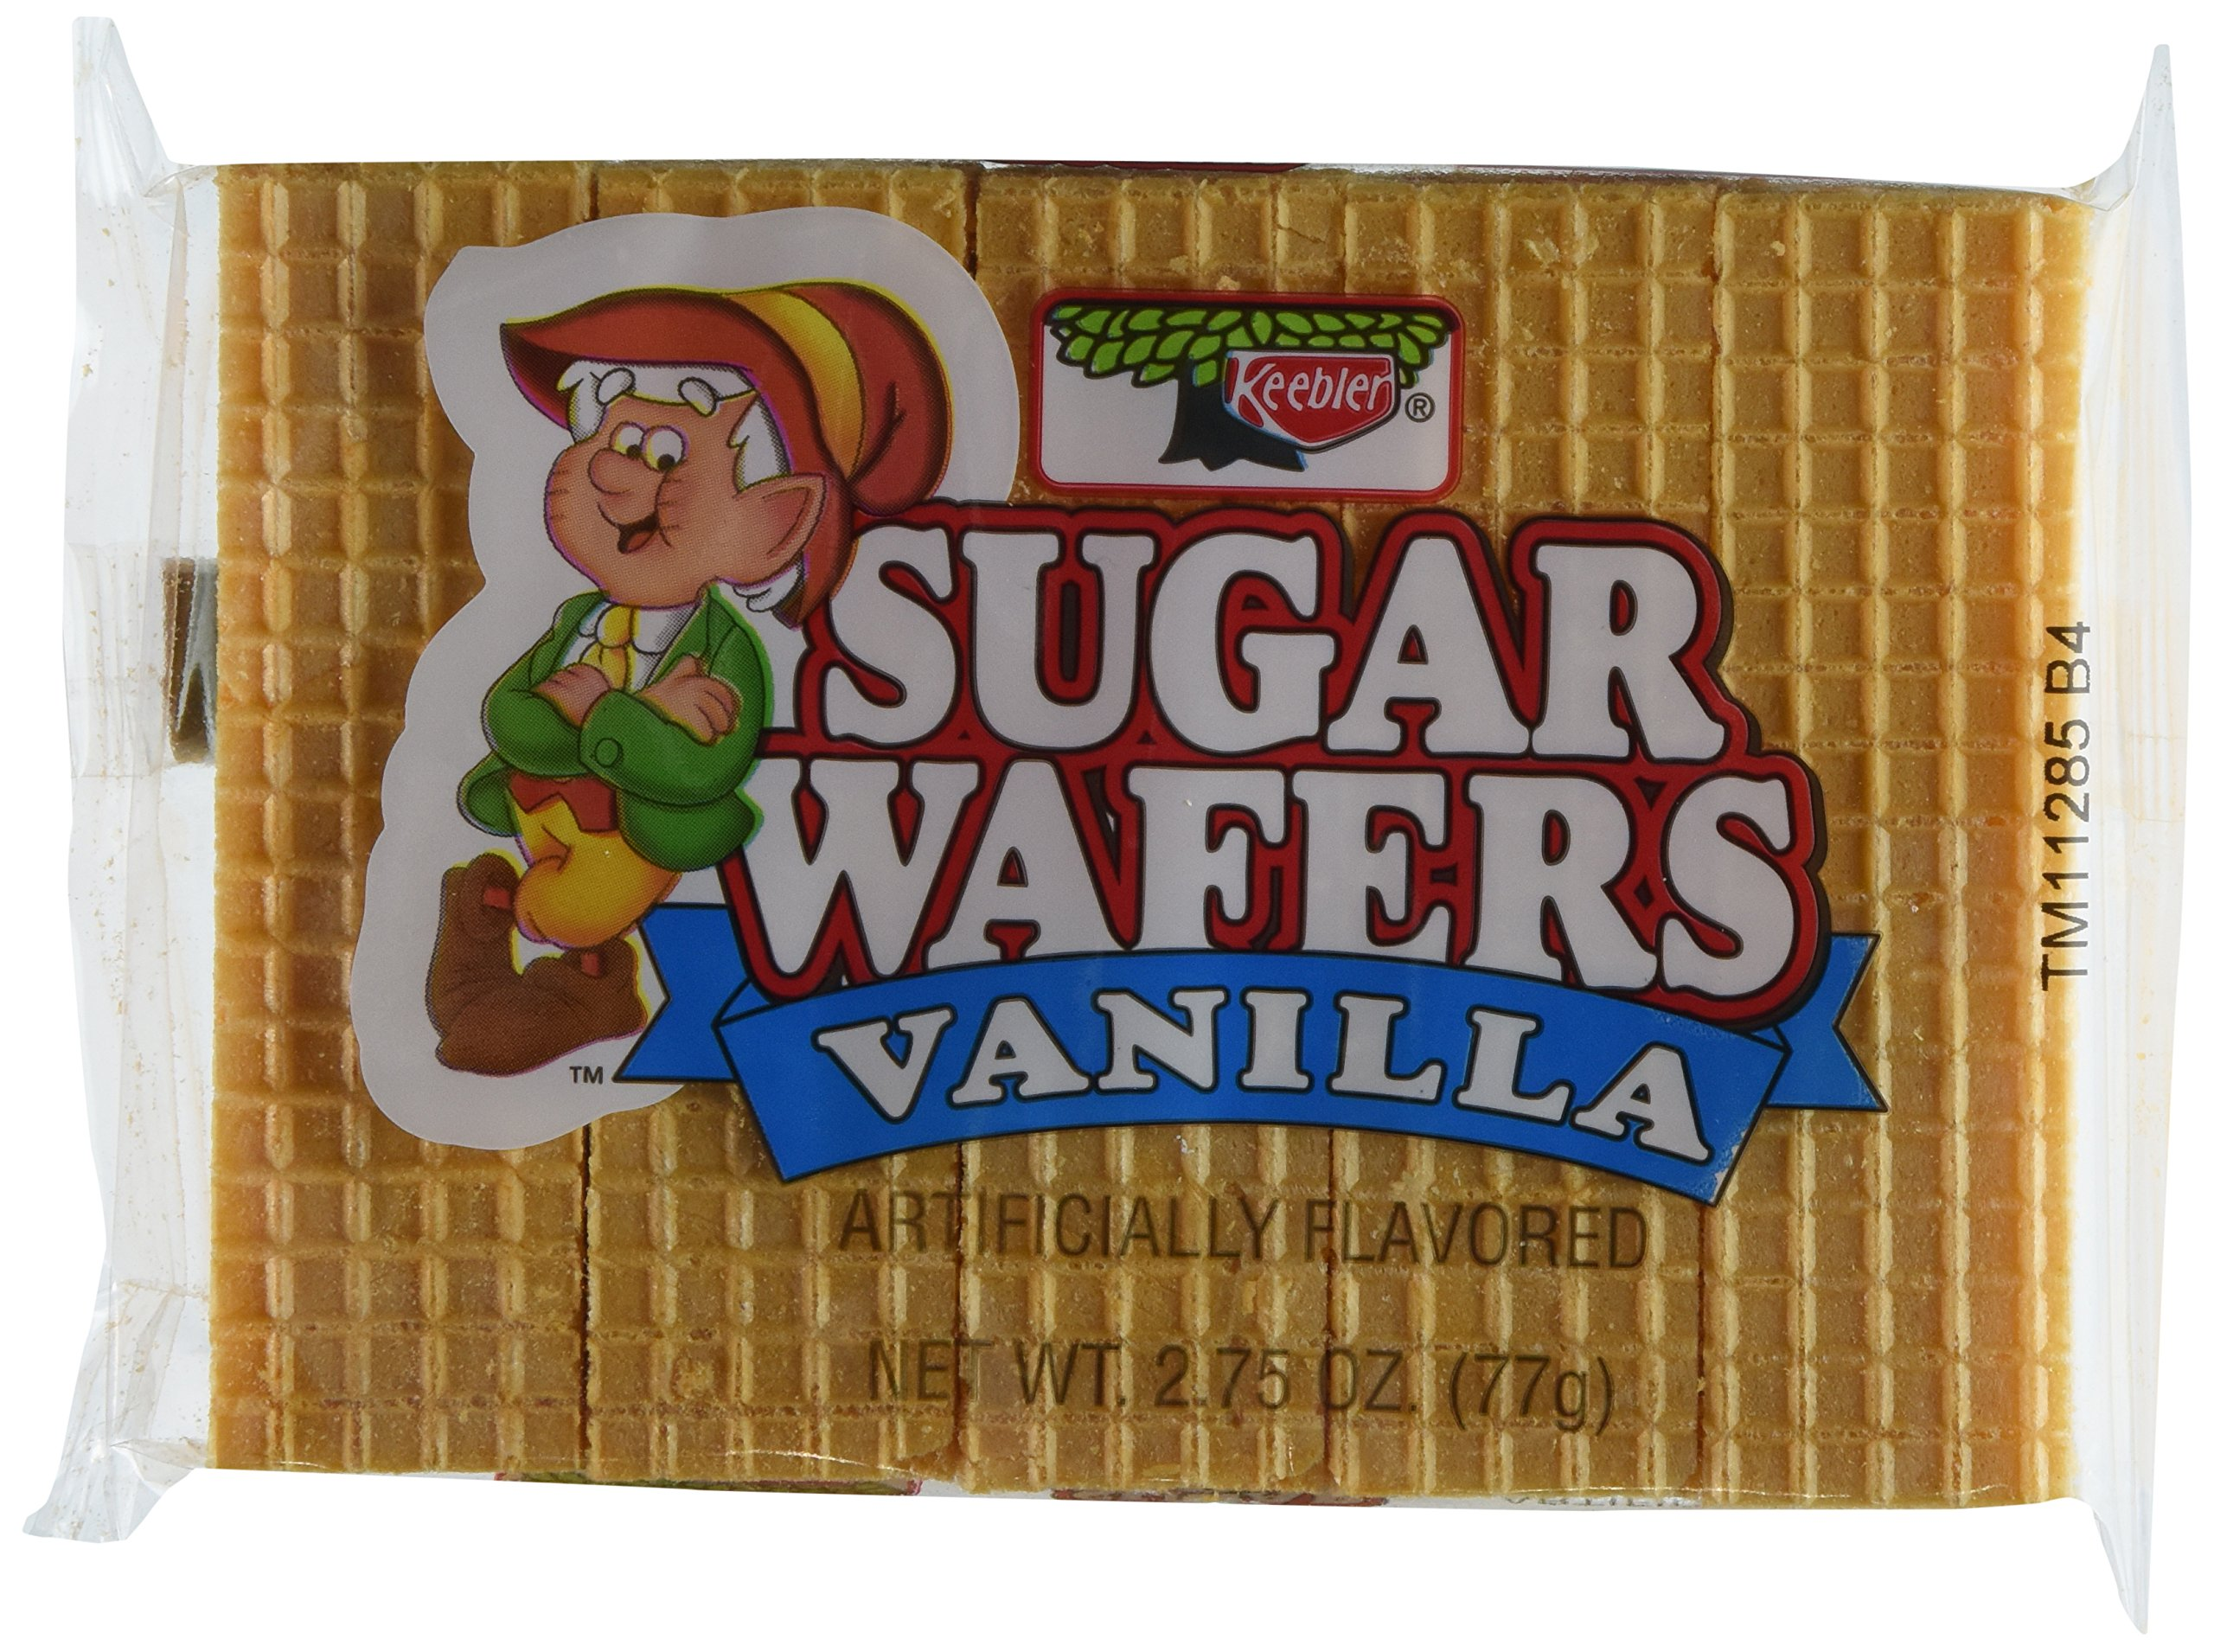 Keebler Sugar Wafer Vanilla, 2.75-Ounce Packages (Pack of 12) by Keebler